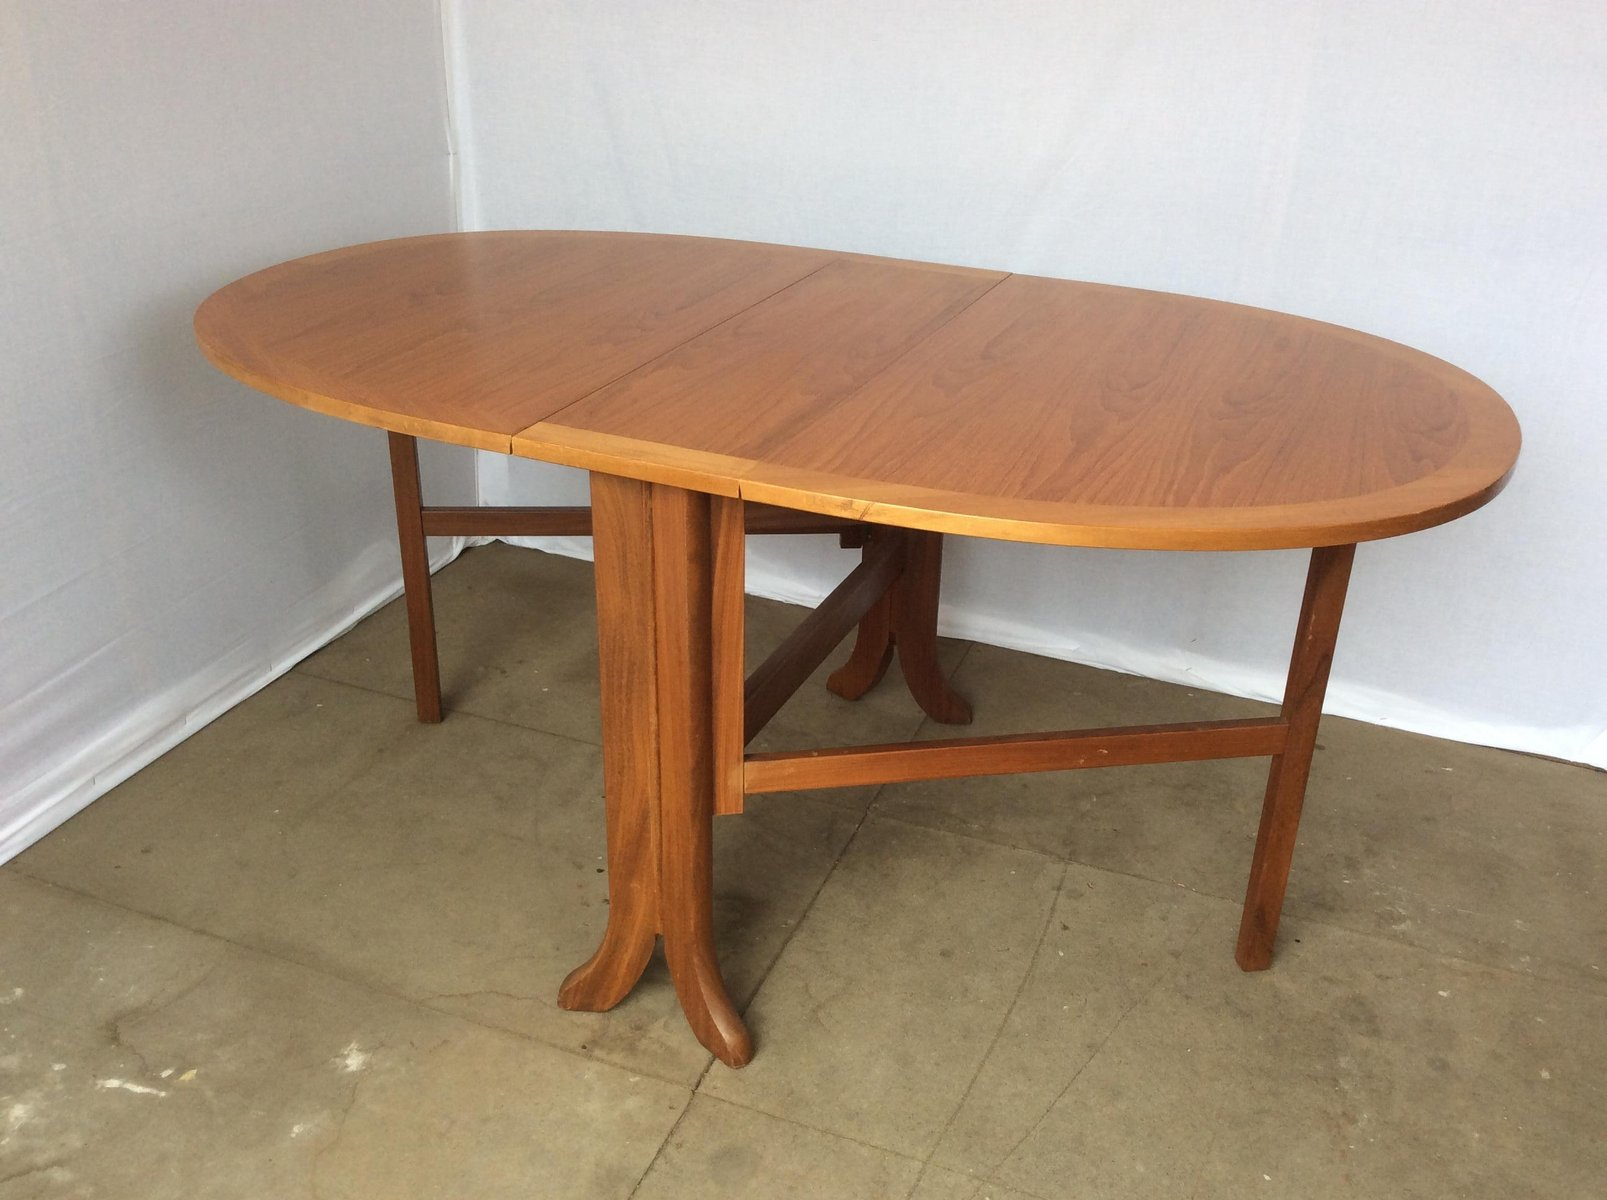 fold up dining tables. mid-century oval fold up teak dining table from nathan tables